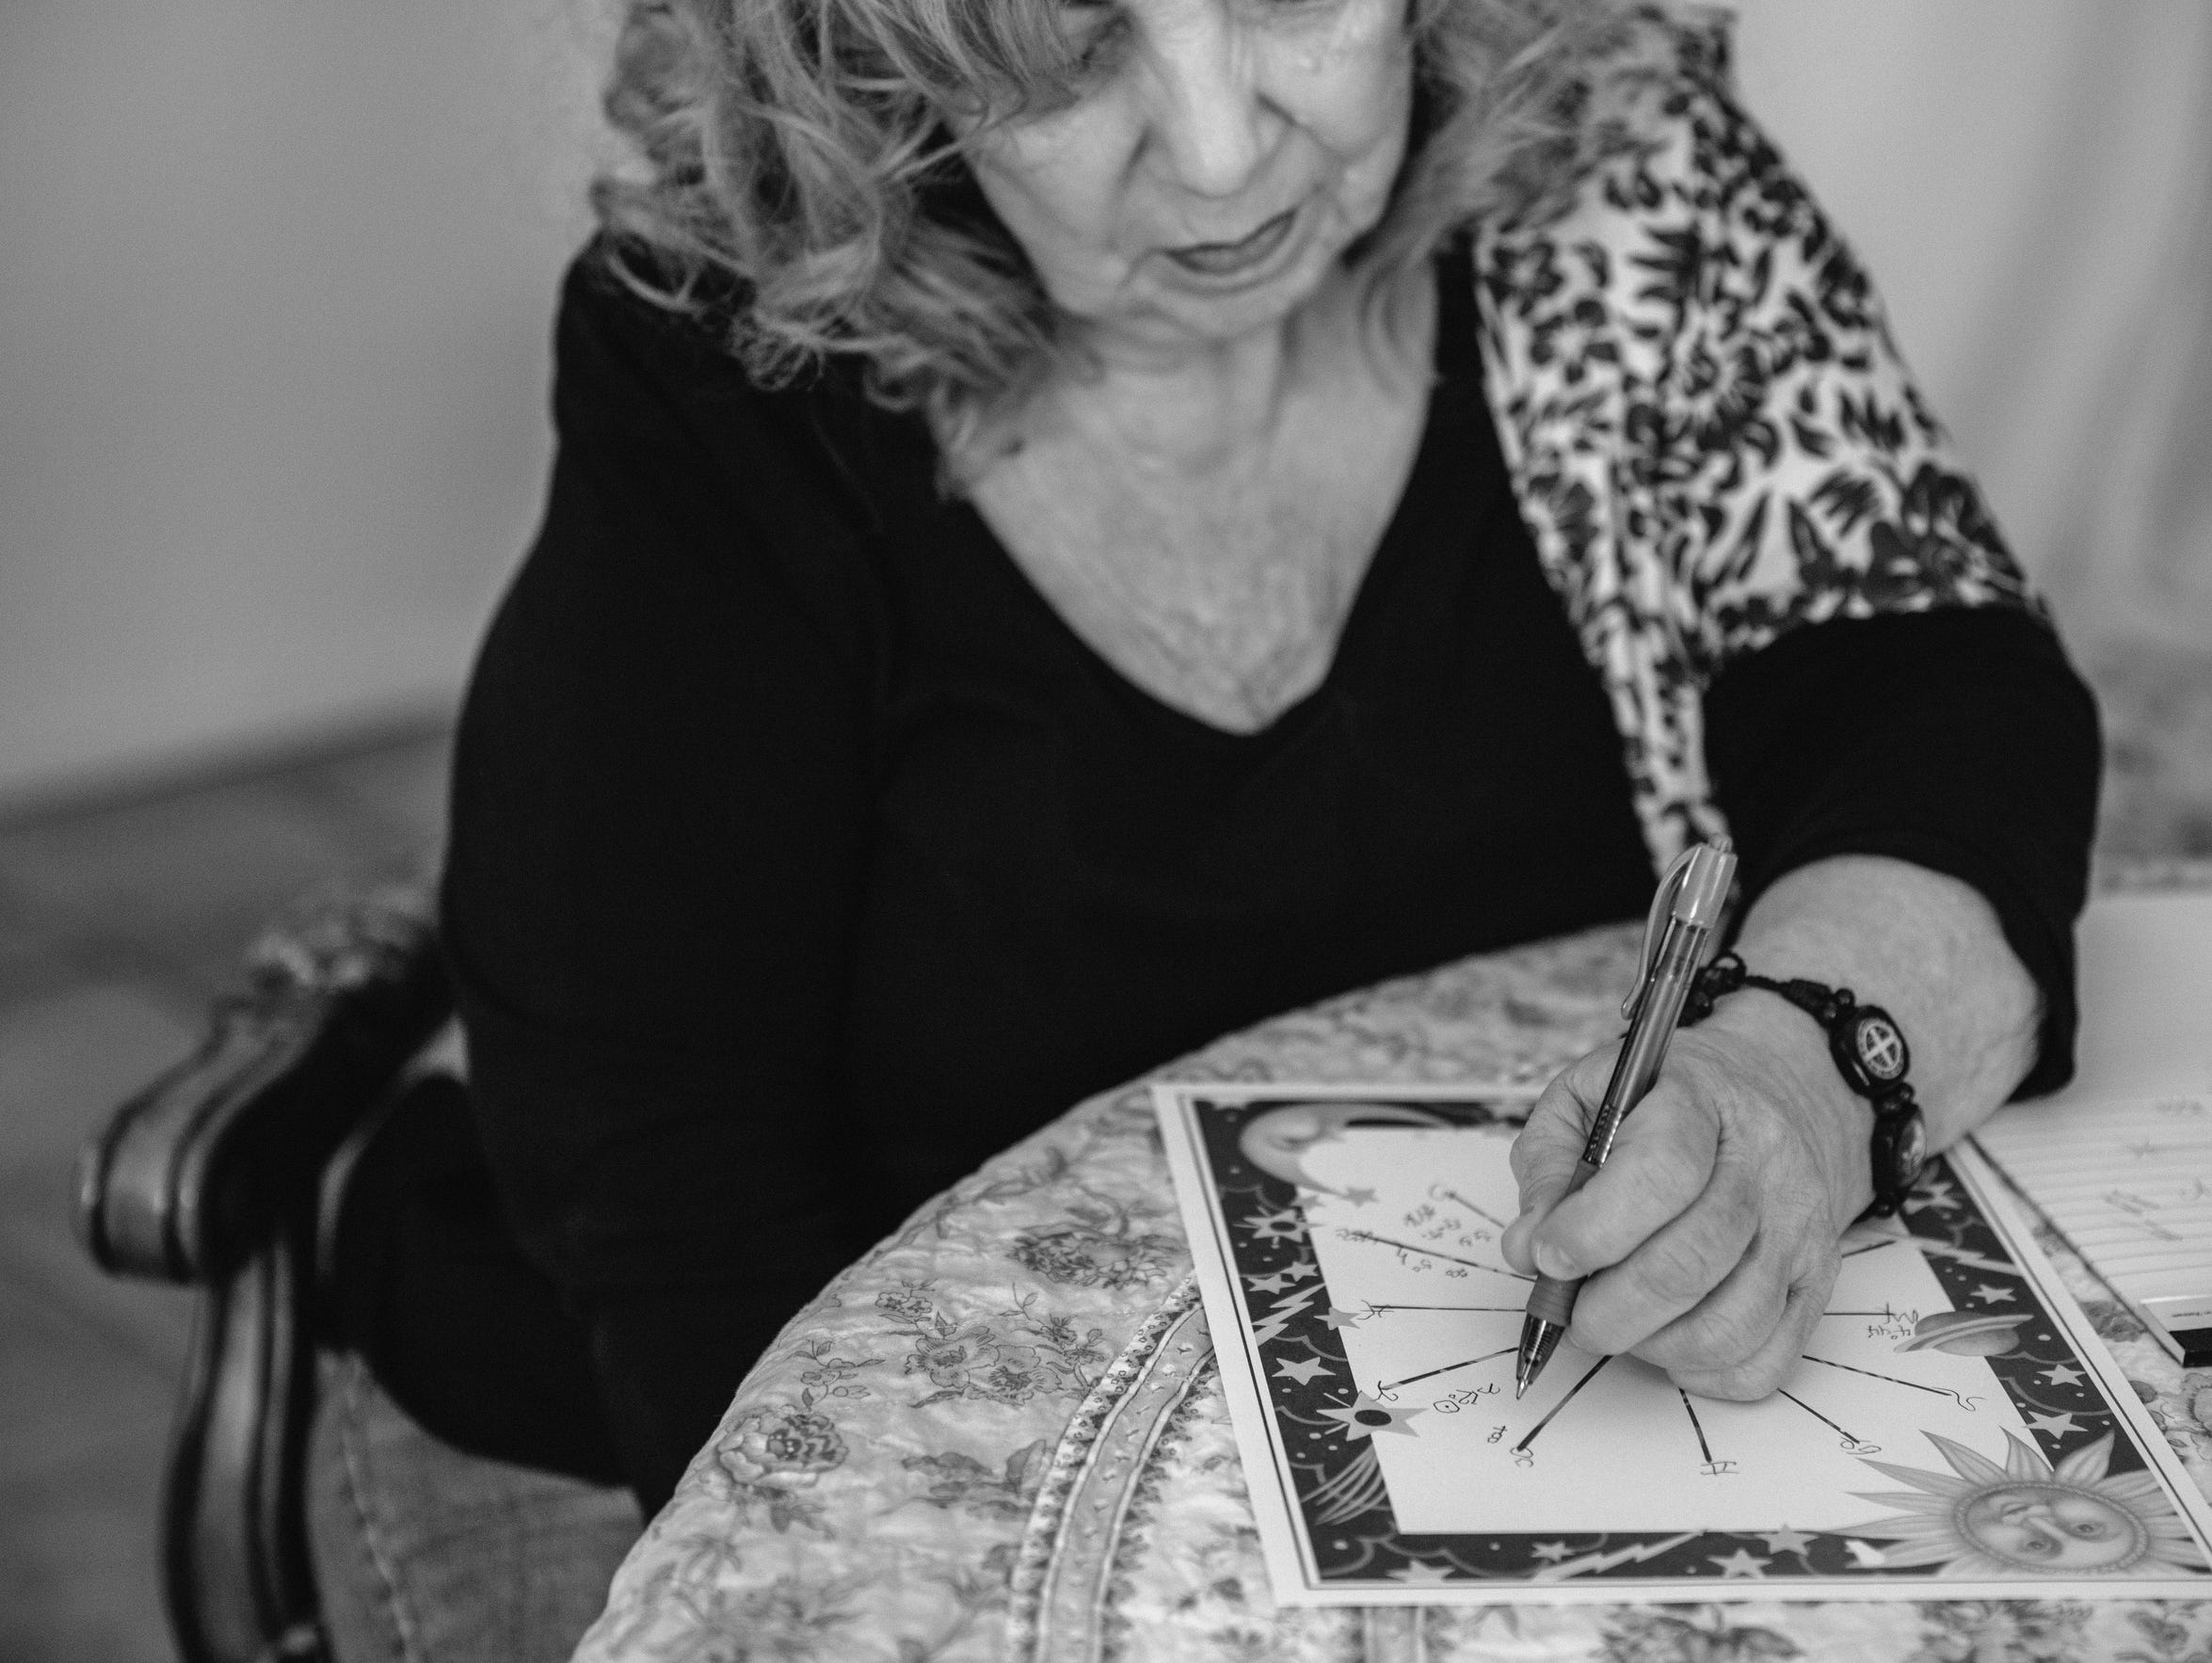 Astrologer Dana Haynes conducts a reading in her home